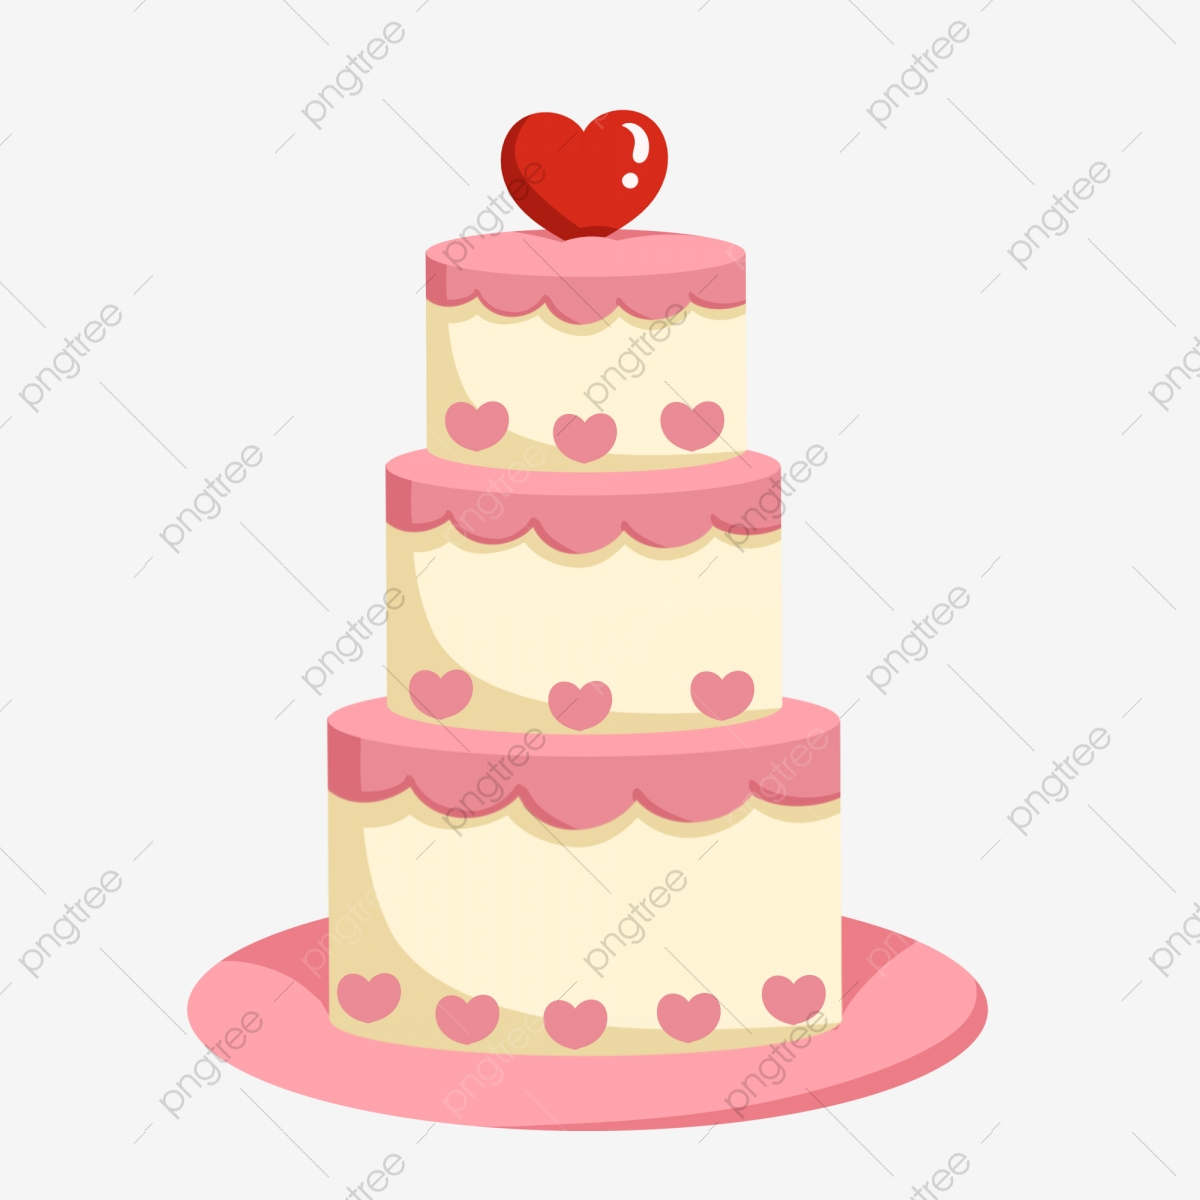 Awesome Valentines Day Small Illustration Pink Love Cake Beautiful Love Funny Birthday Cards Online Inifofree Goldxyz